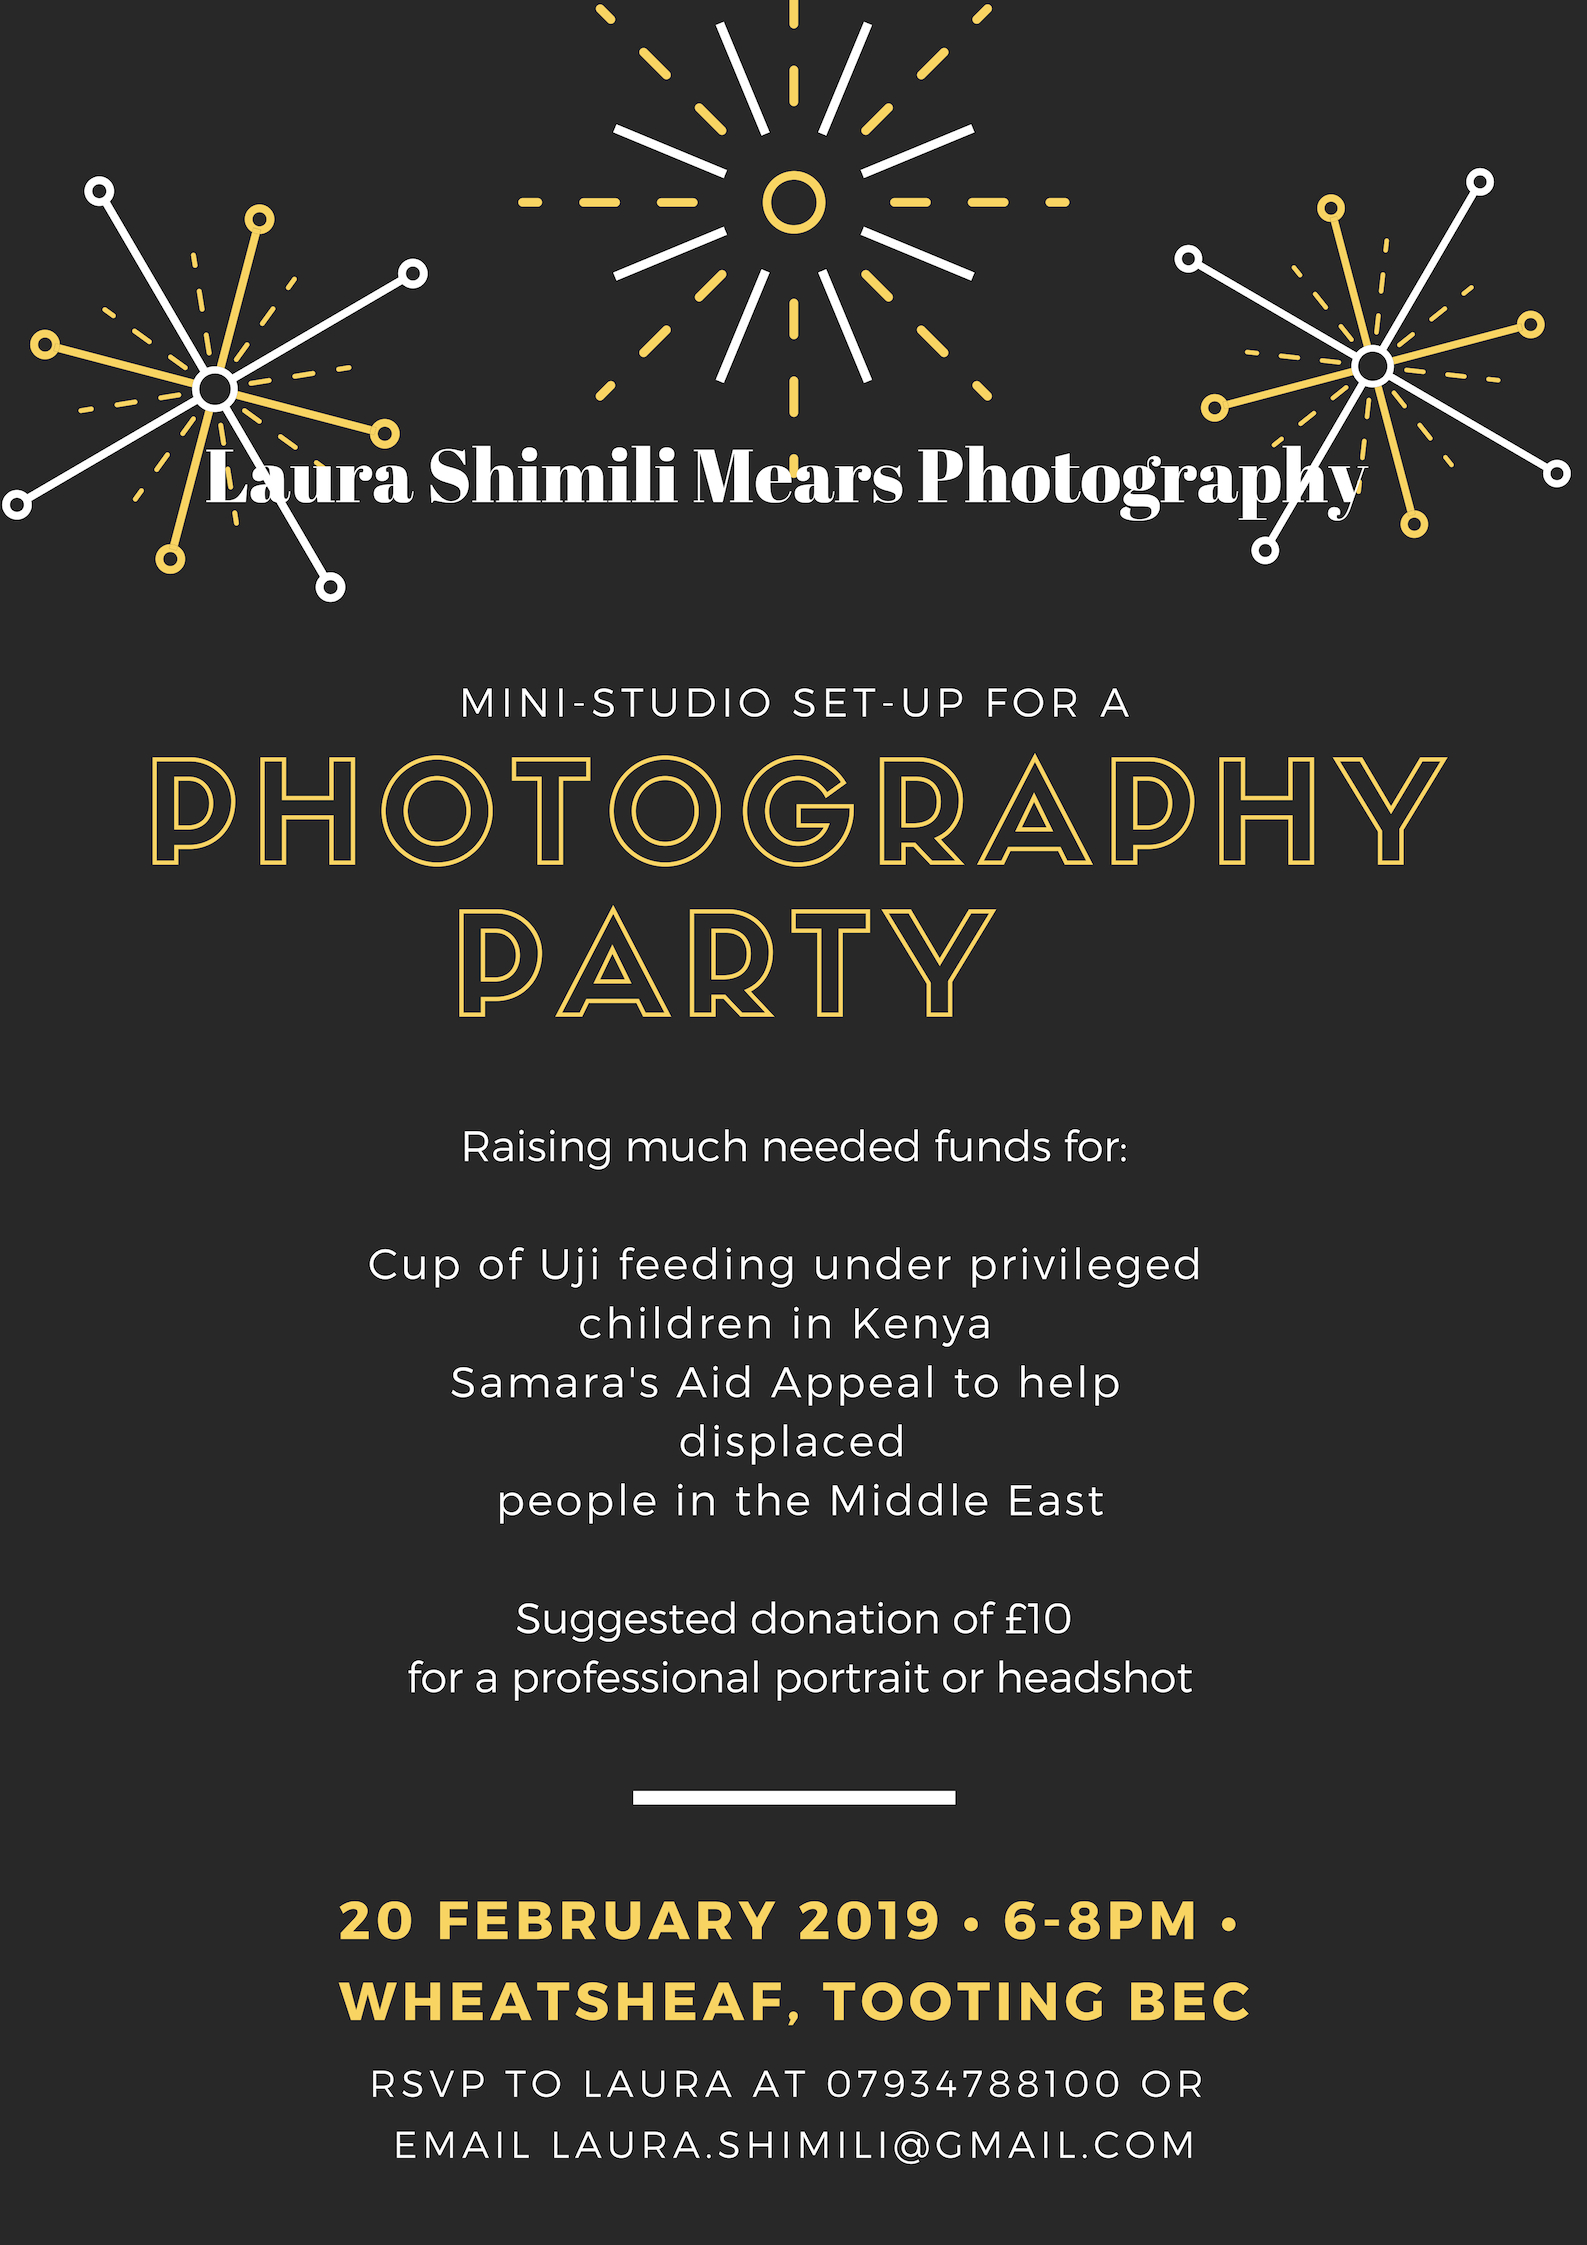 Photography Party, at the Wheatsheaf in Tooting Bec